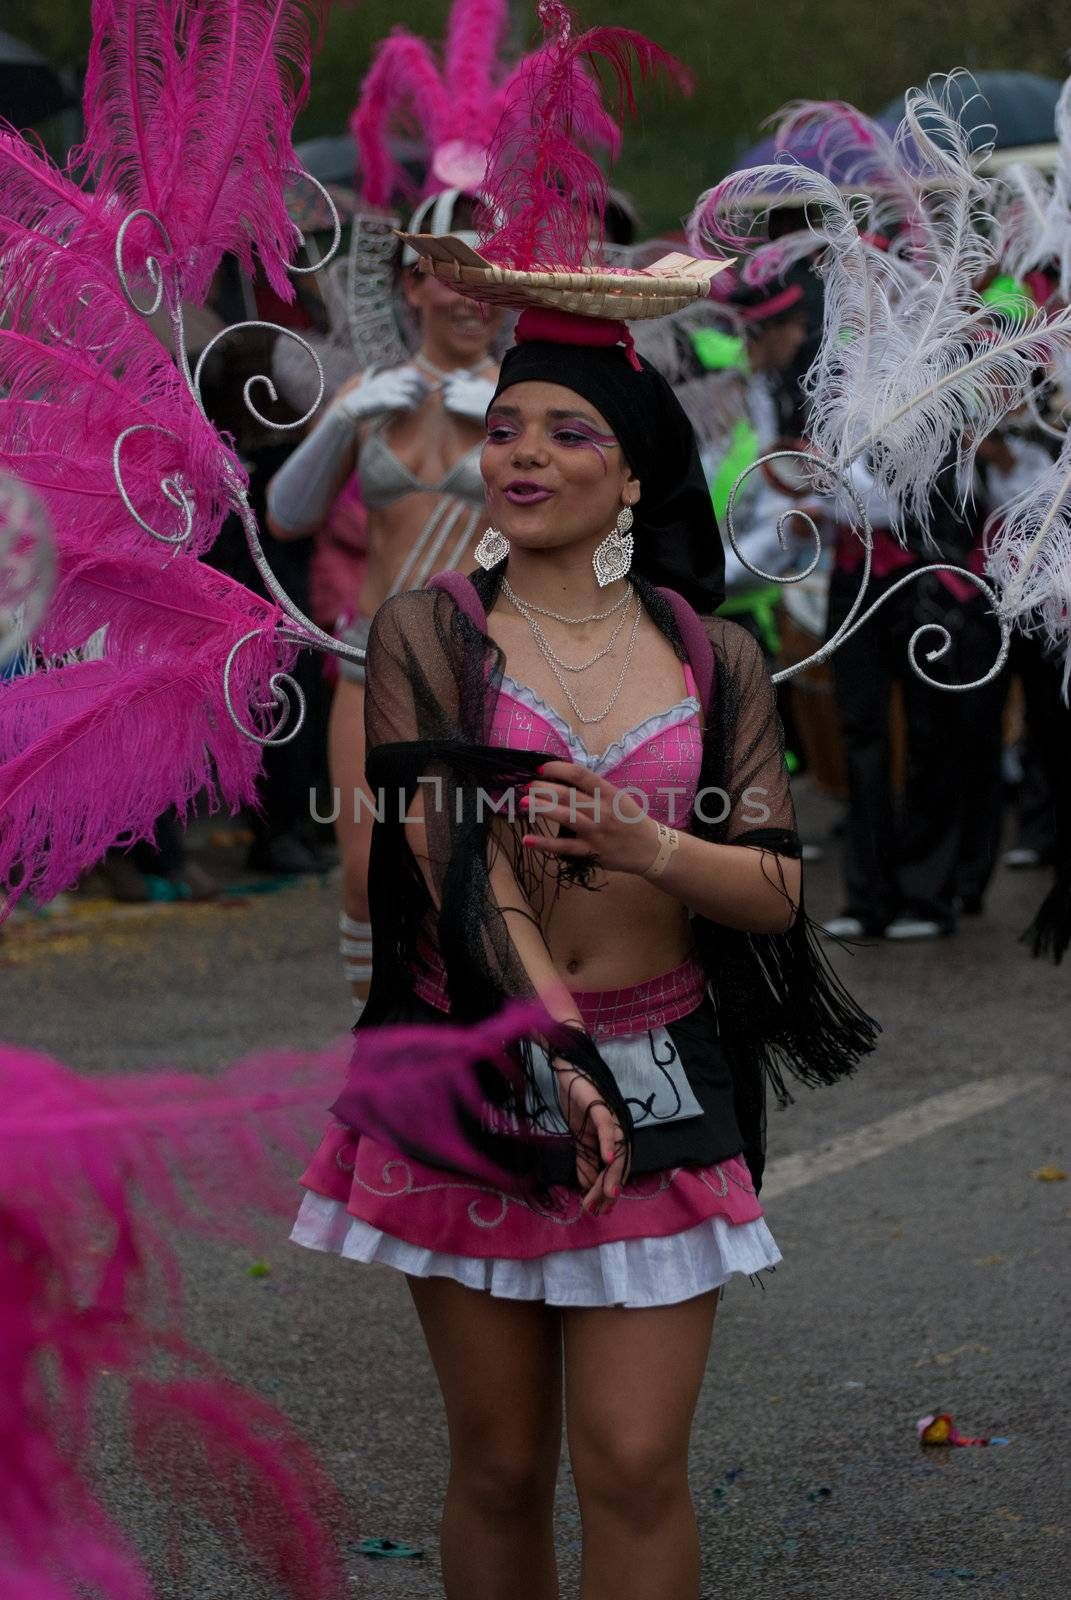 OVAR, PORTUGAL - MARCH 8: Group 'Escola de Samba Juventude Vareira'  during the Carnival Parade on March 8, 2011 in Ovar, Portugal.